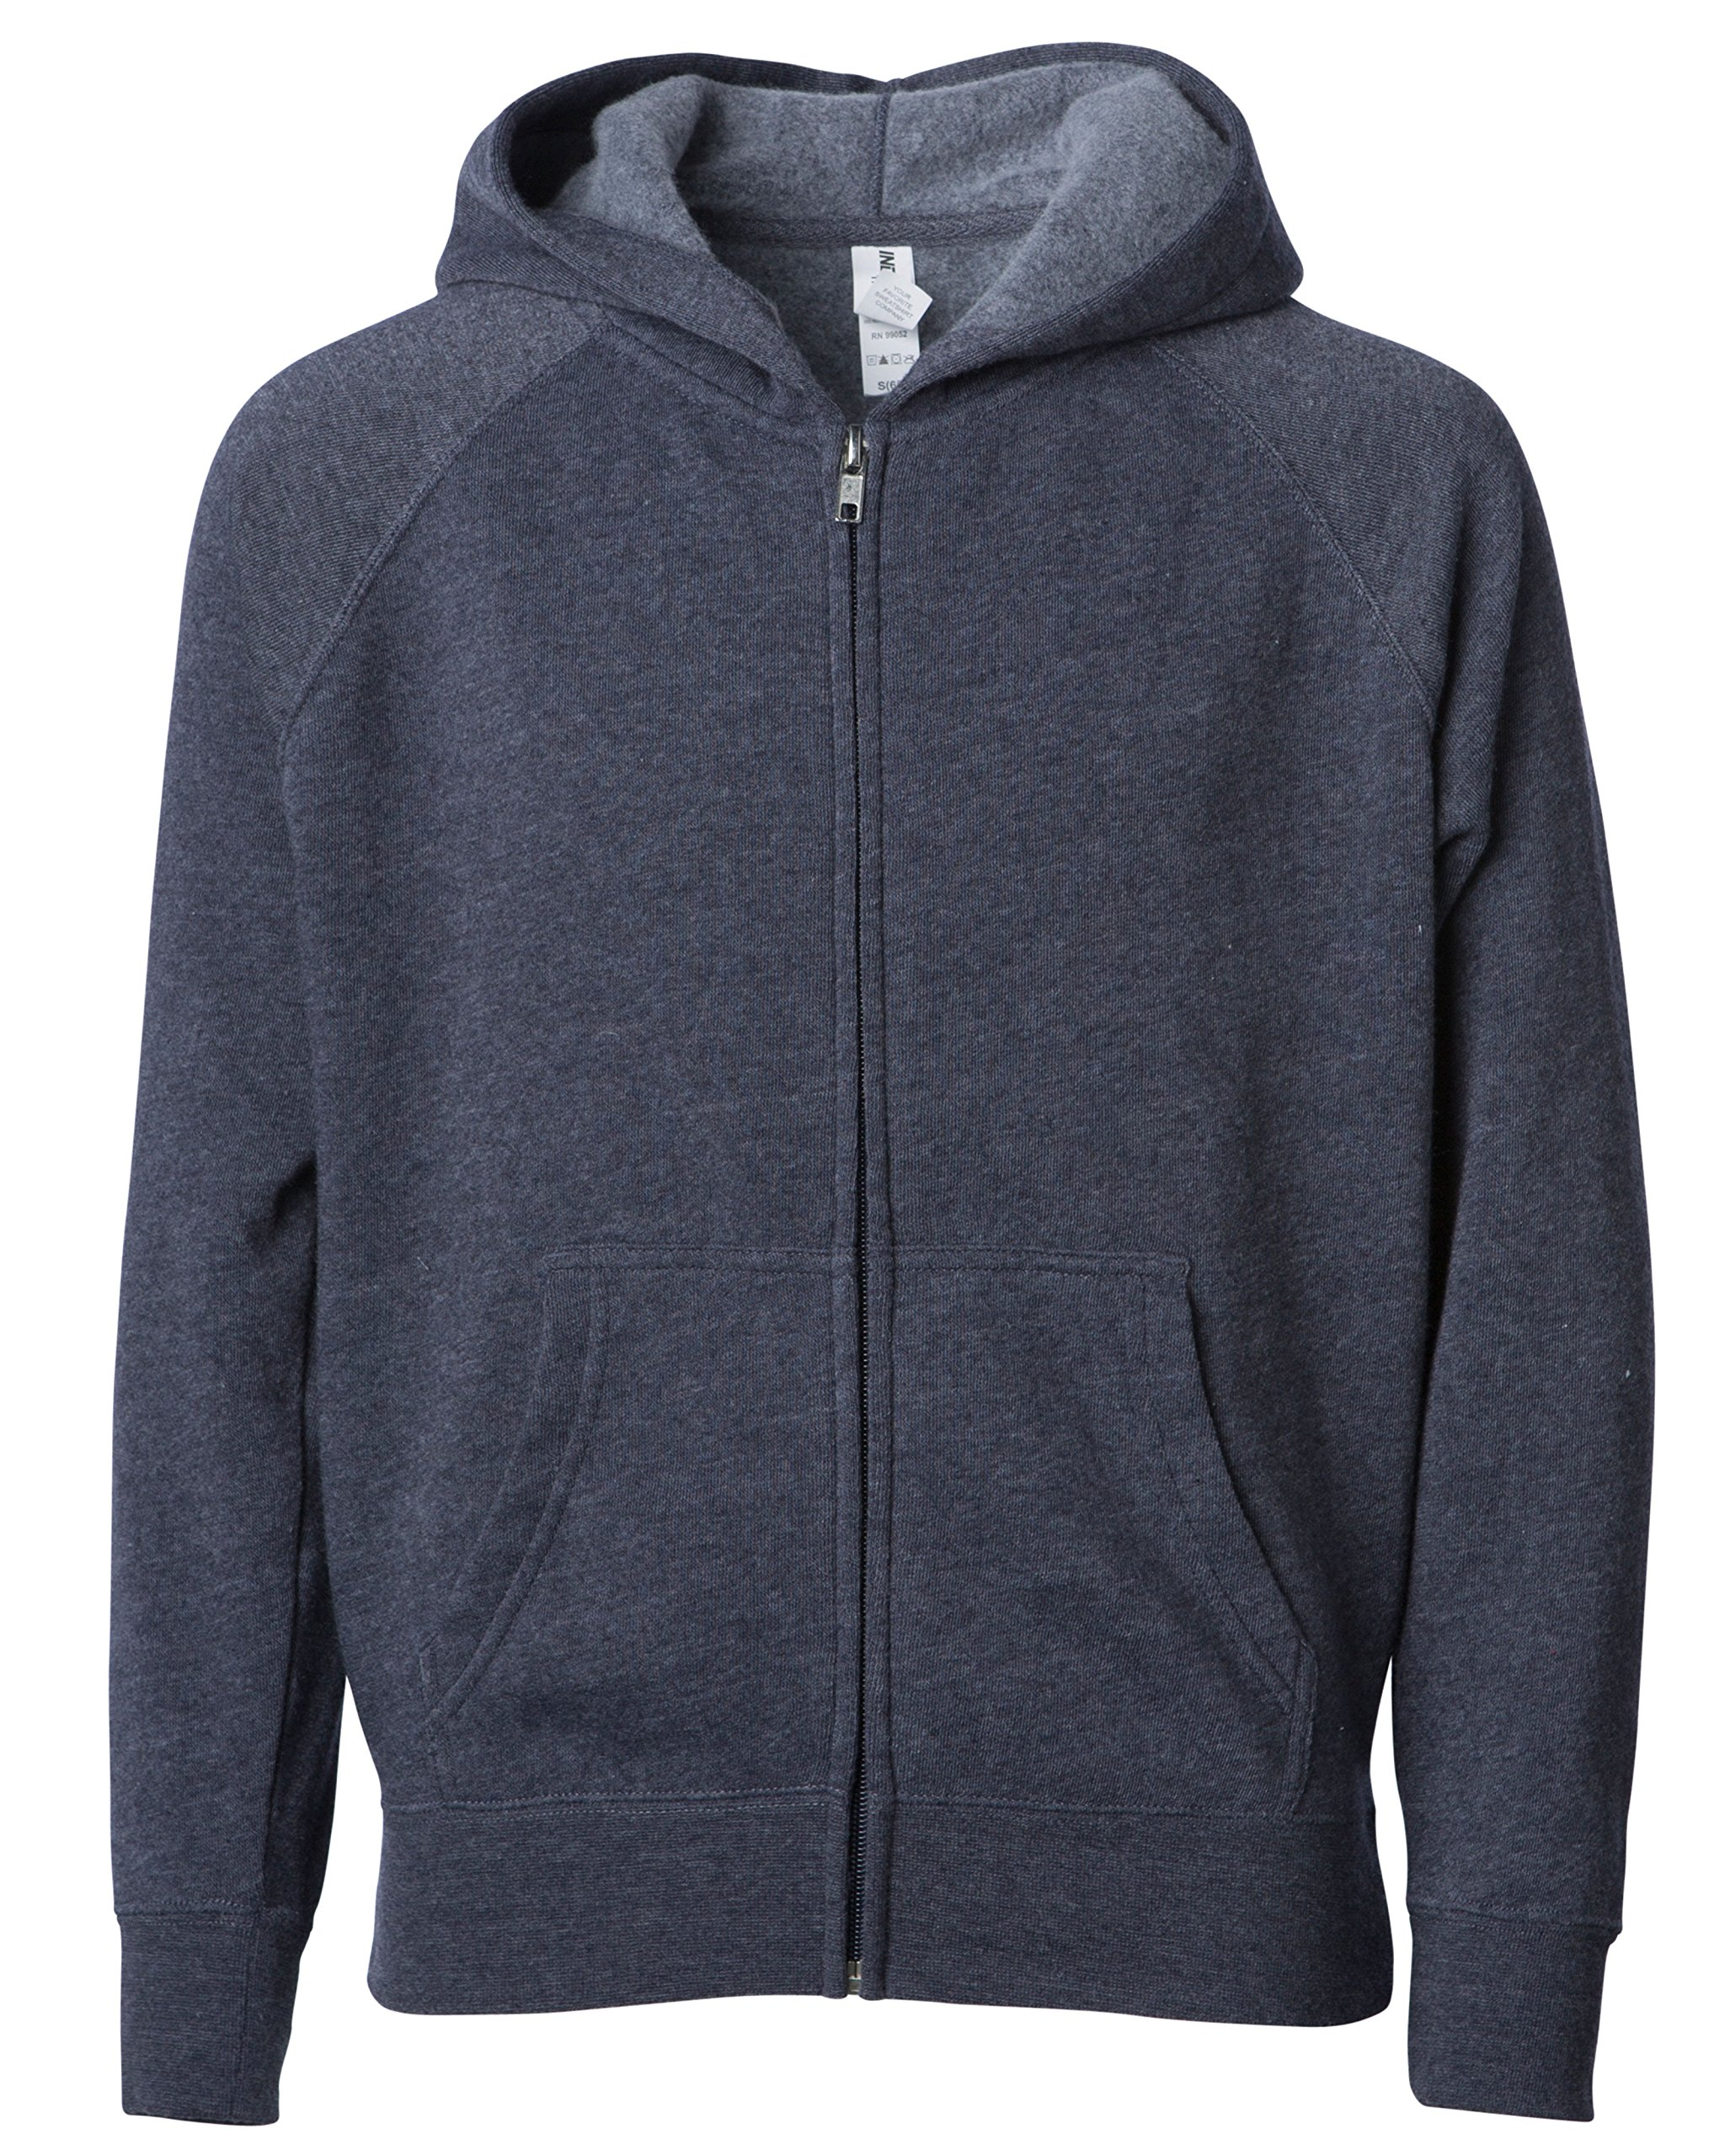 Little Kids Hoodie with Pocket for Toddler Boys an Girls Navy Blue 5/6T